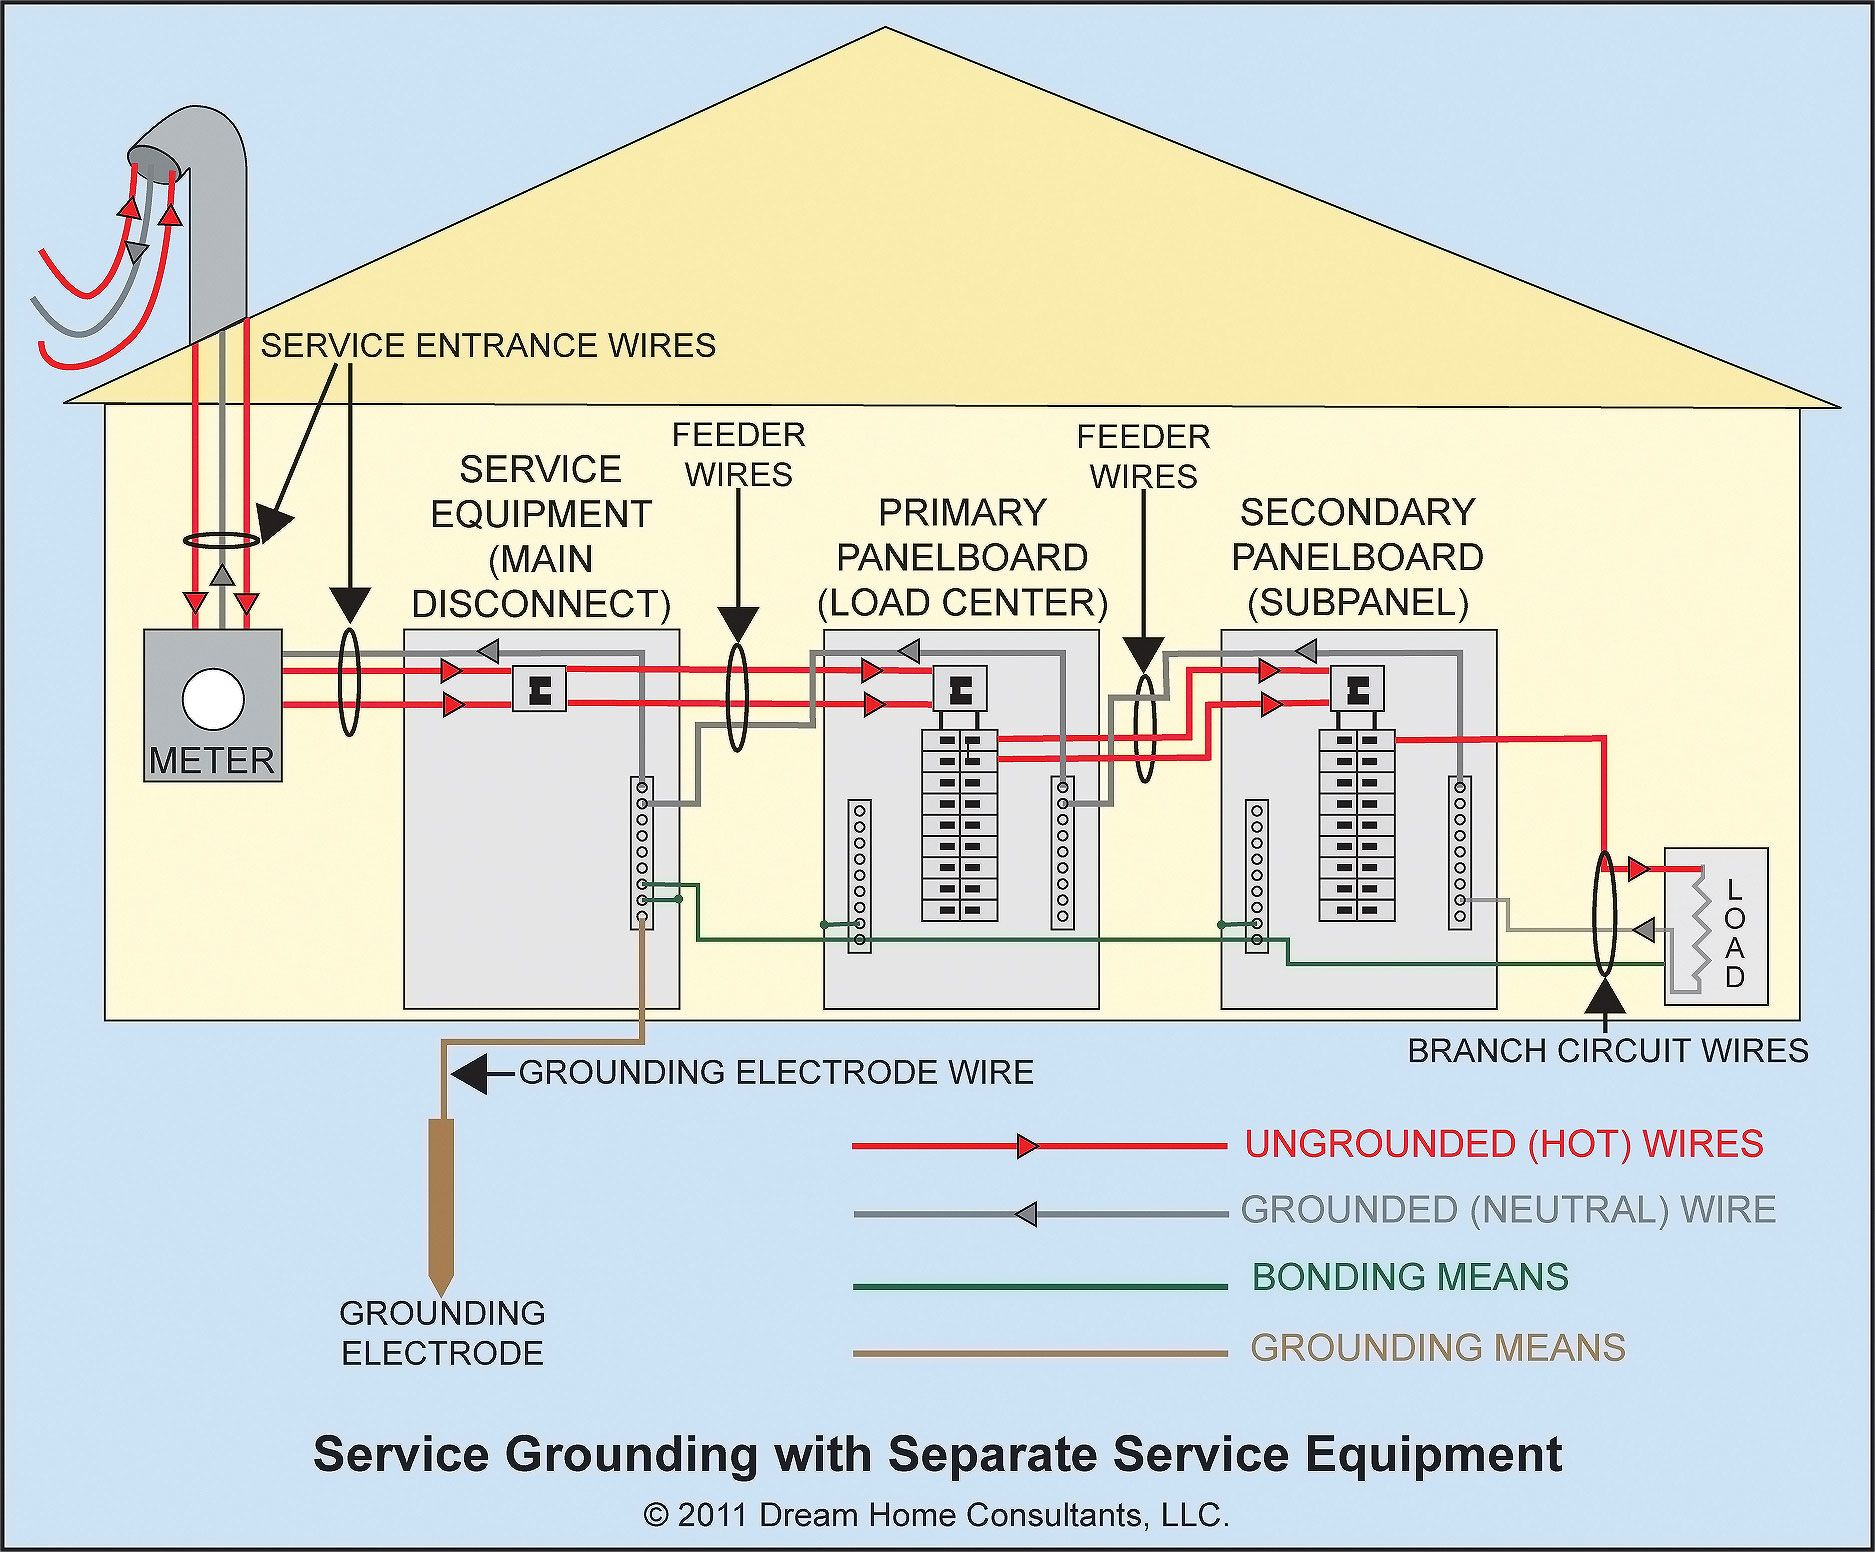 Service Grounding General Requirements Home Electrical Wiring Electrical Wiring Service Entrance Wire